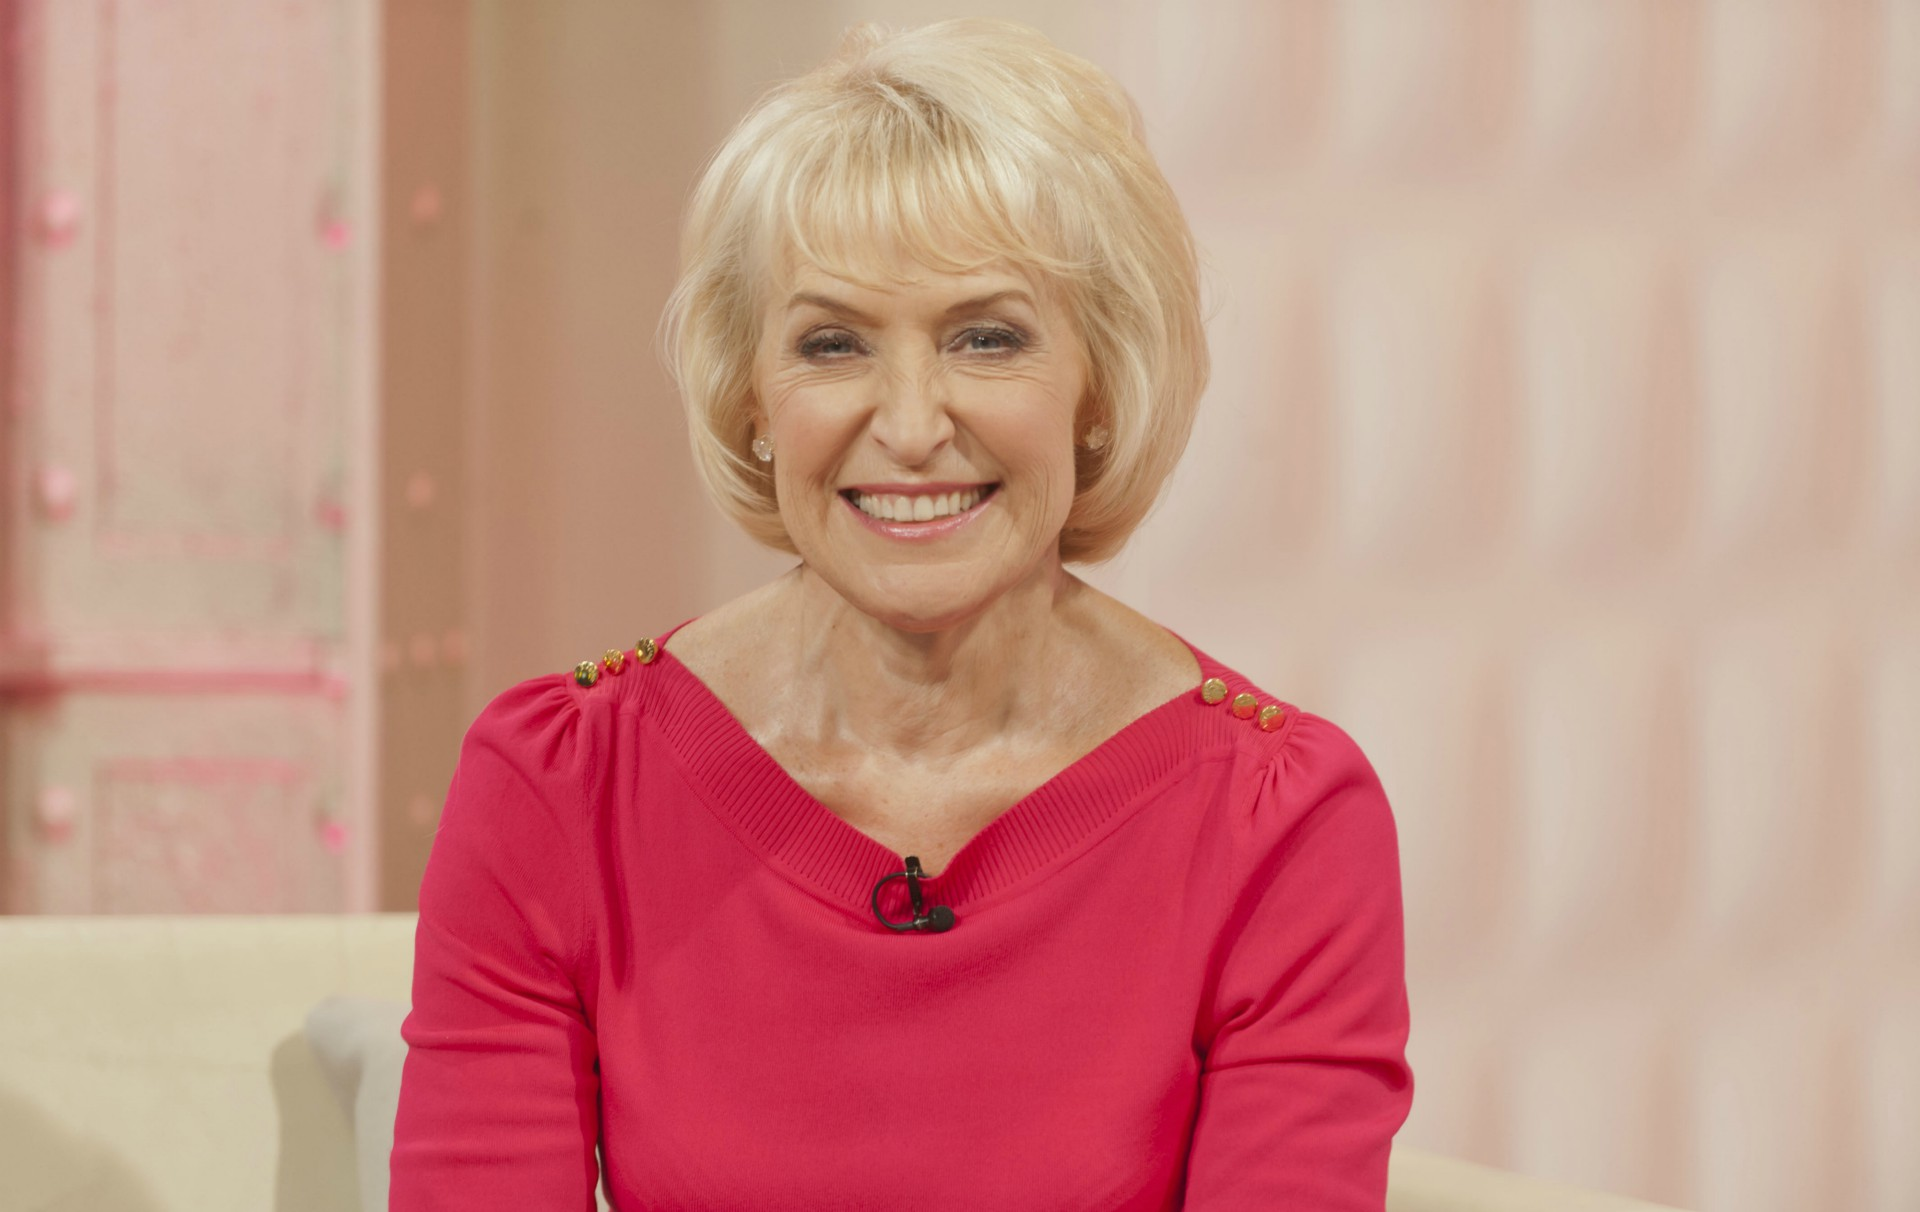 Who is Rosemary Conley